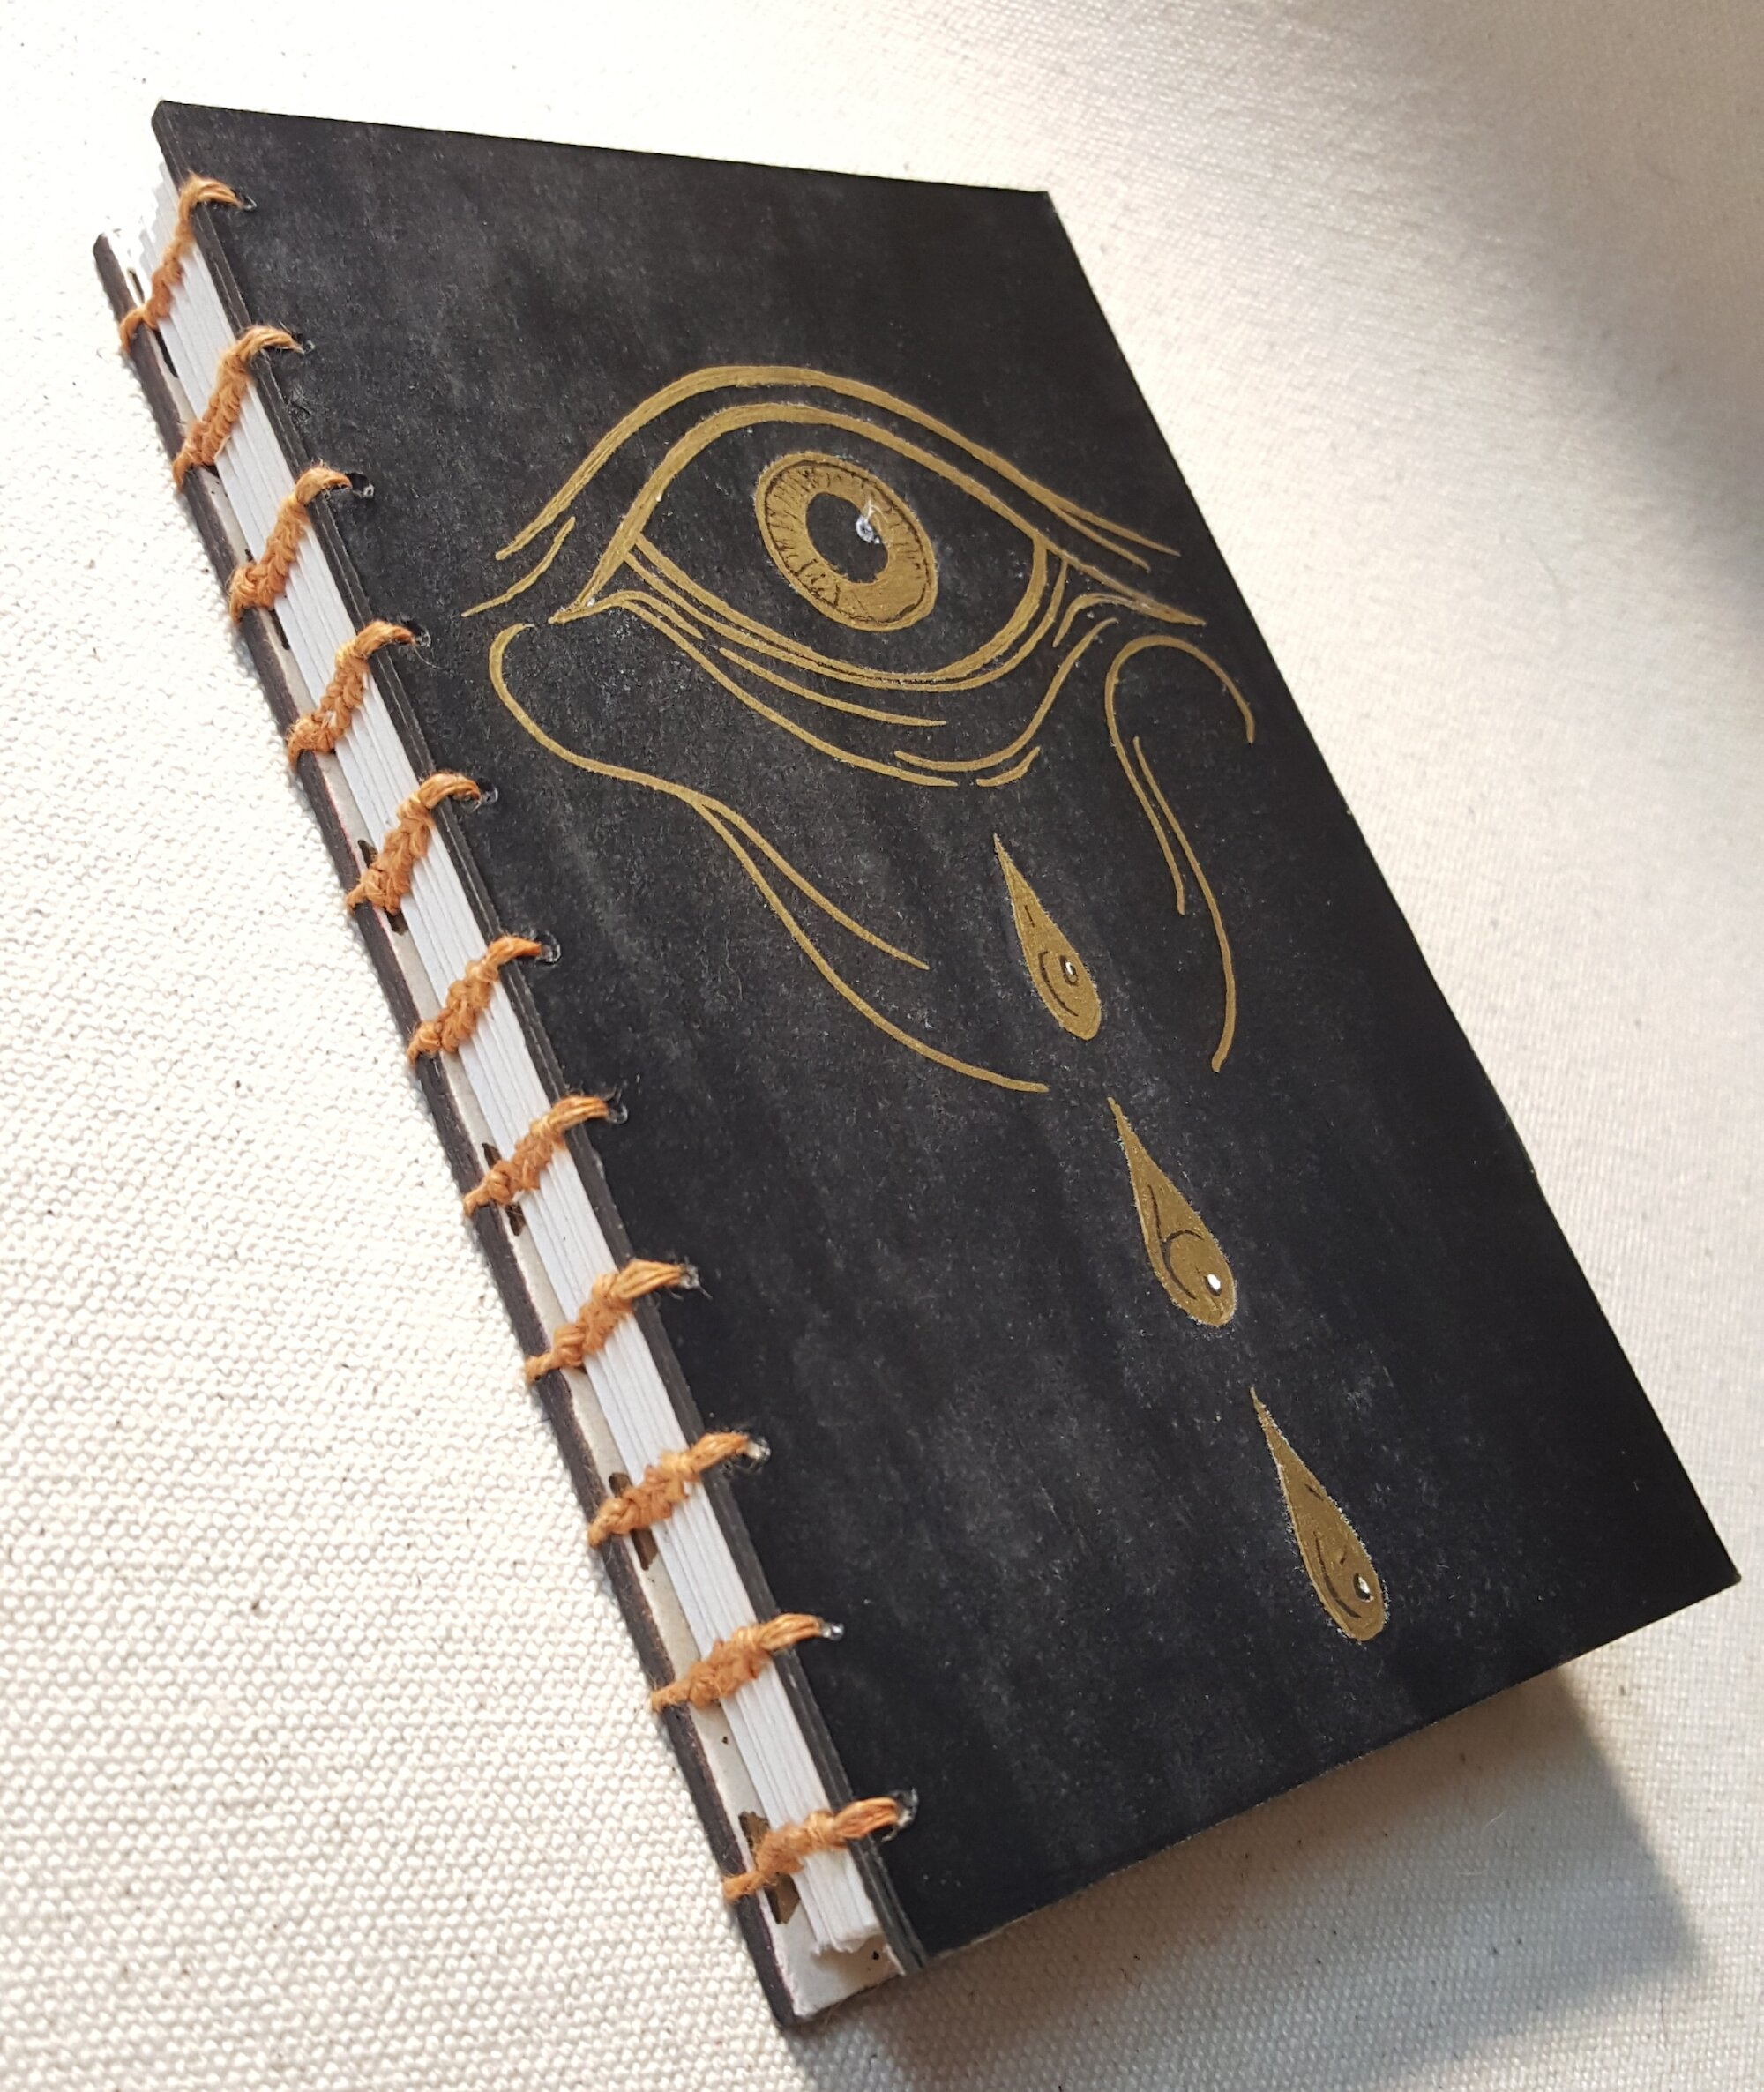 Coptic Stitch Bookbinding - Sunday, October 27, 1–4 PM / Instructor: Haleigh Givens